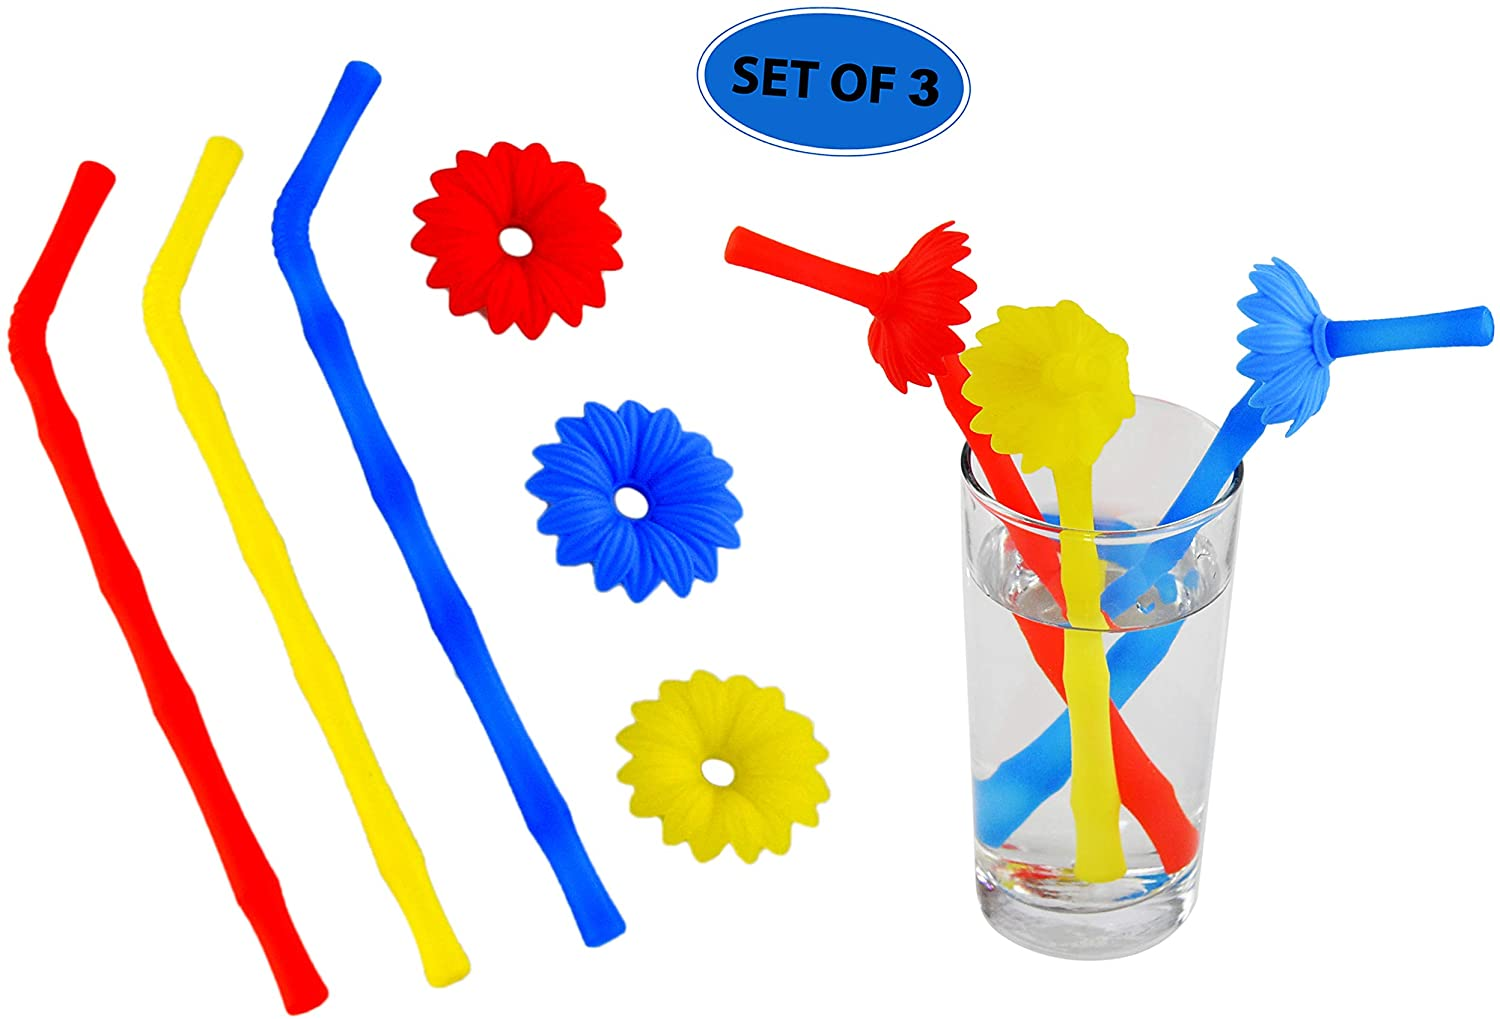 "HOME-X Reusable Silicone Drinking Straws with Removable Flowers, Big Size Flexible Straws, BPA Free, 3 Pieces-Yellow, Blue, and Red, Set of 3-8.75"" L"